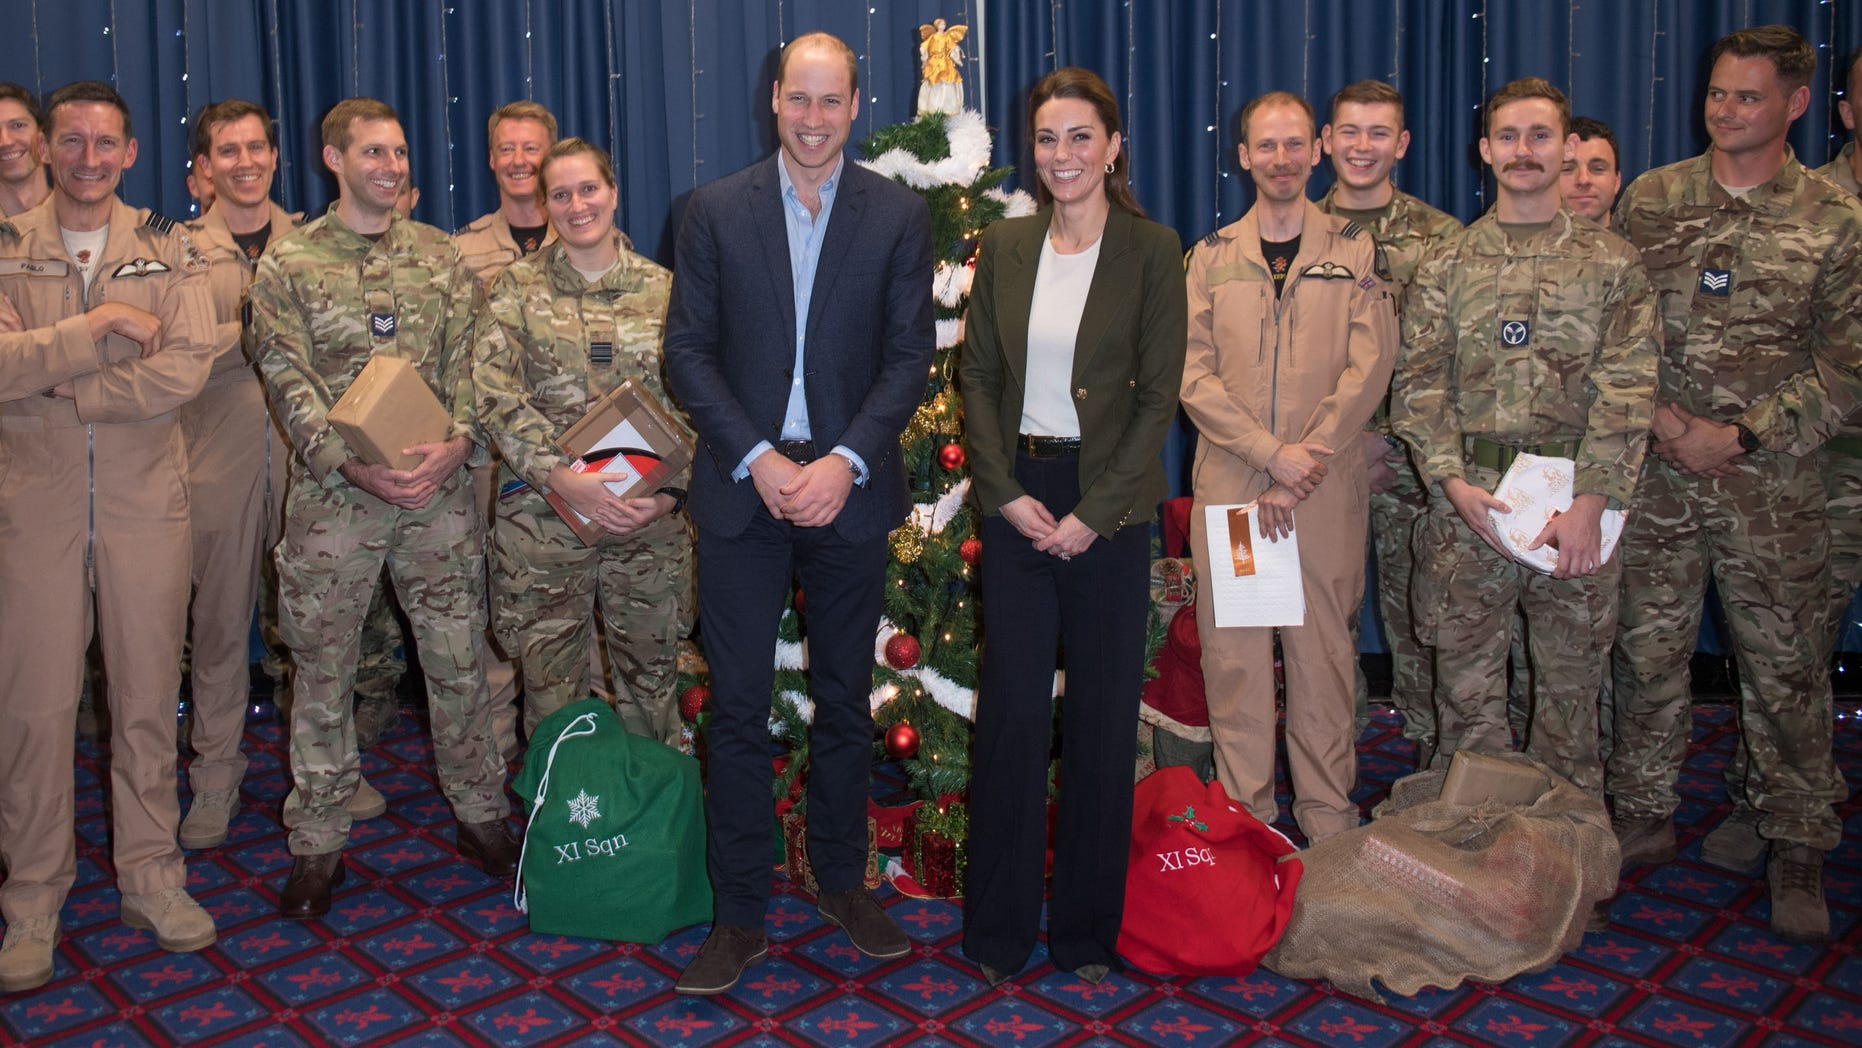 Kate Middleton Dressed Like A Christmas Tree, Prince William Says